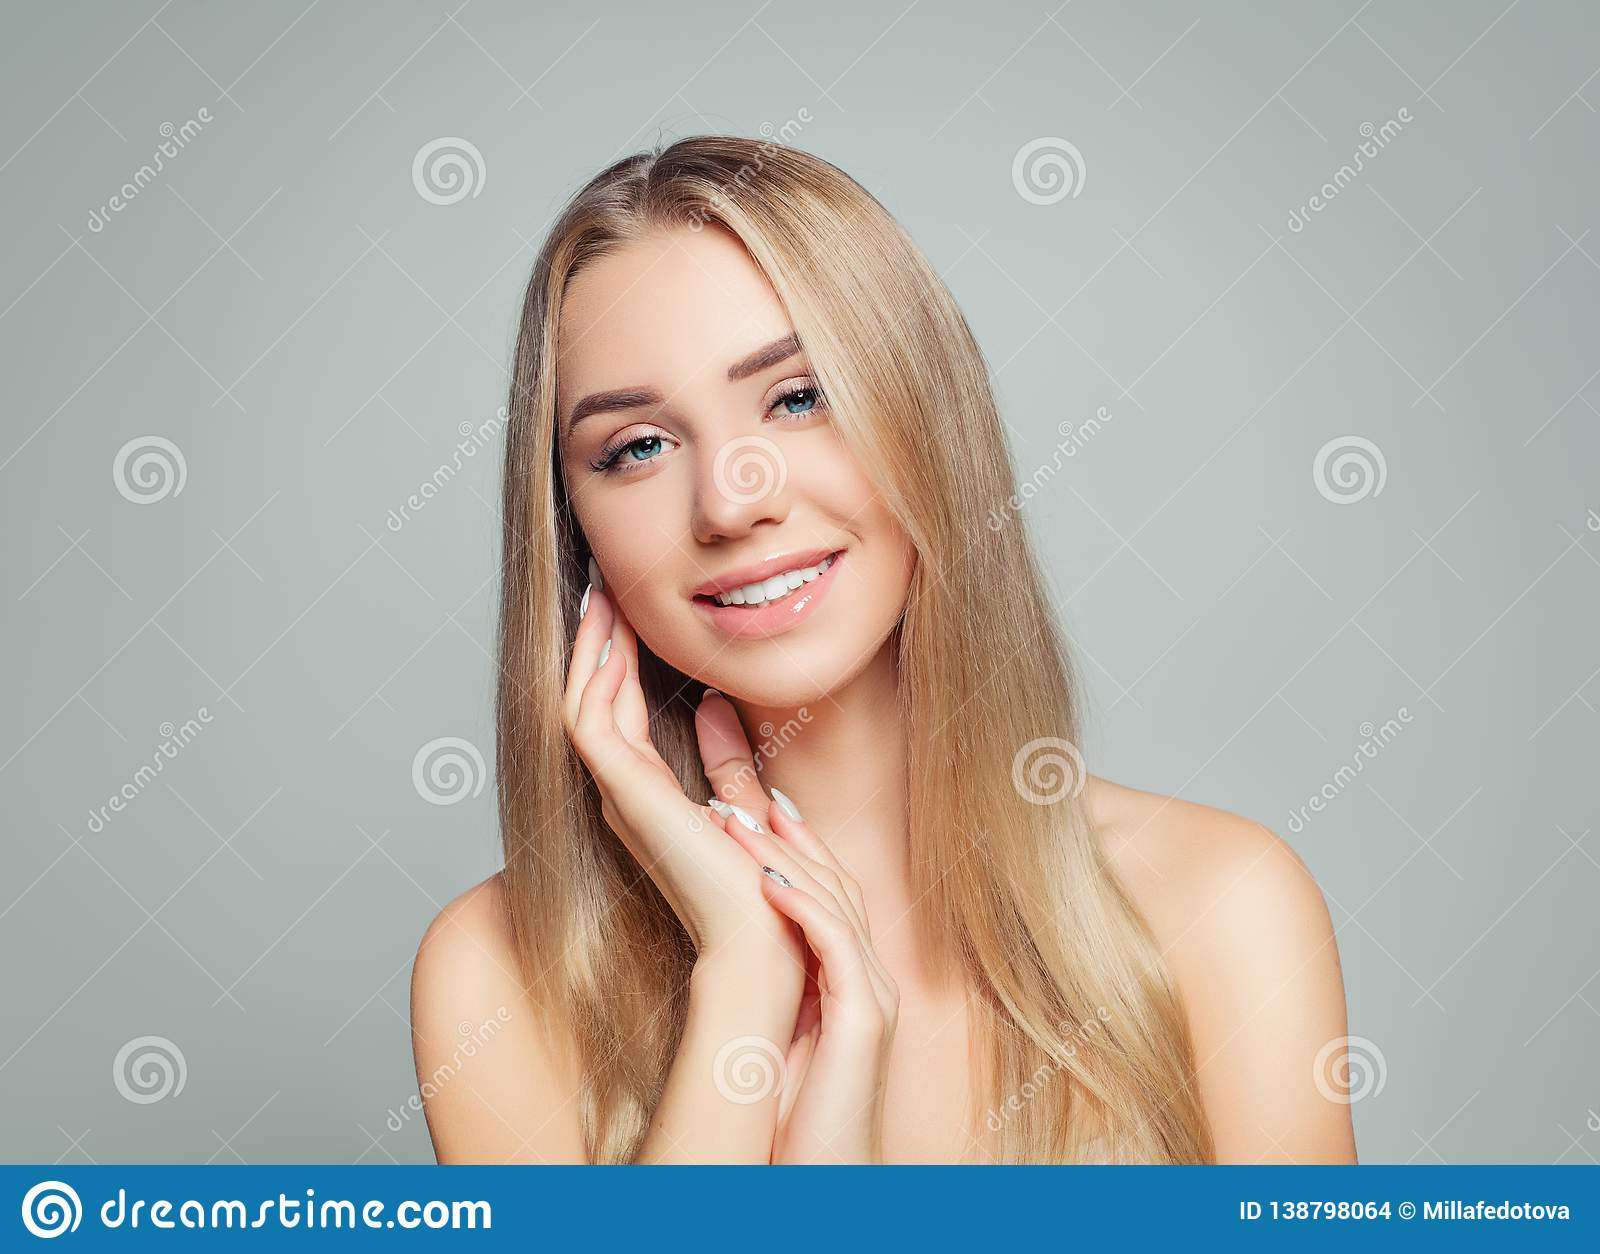 Happy woman with healthy hair and skin. Blonde girl smiling